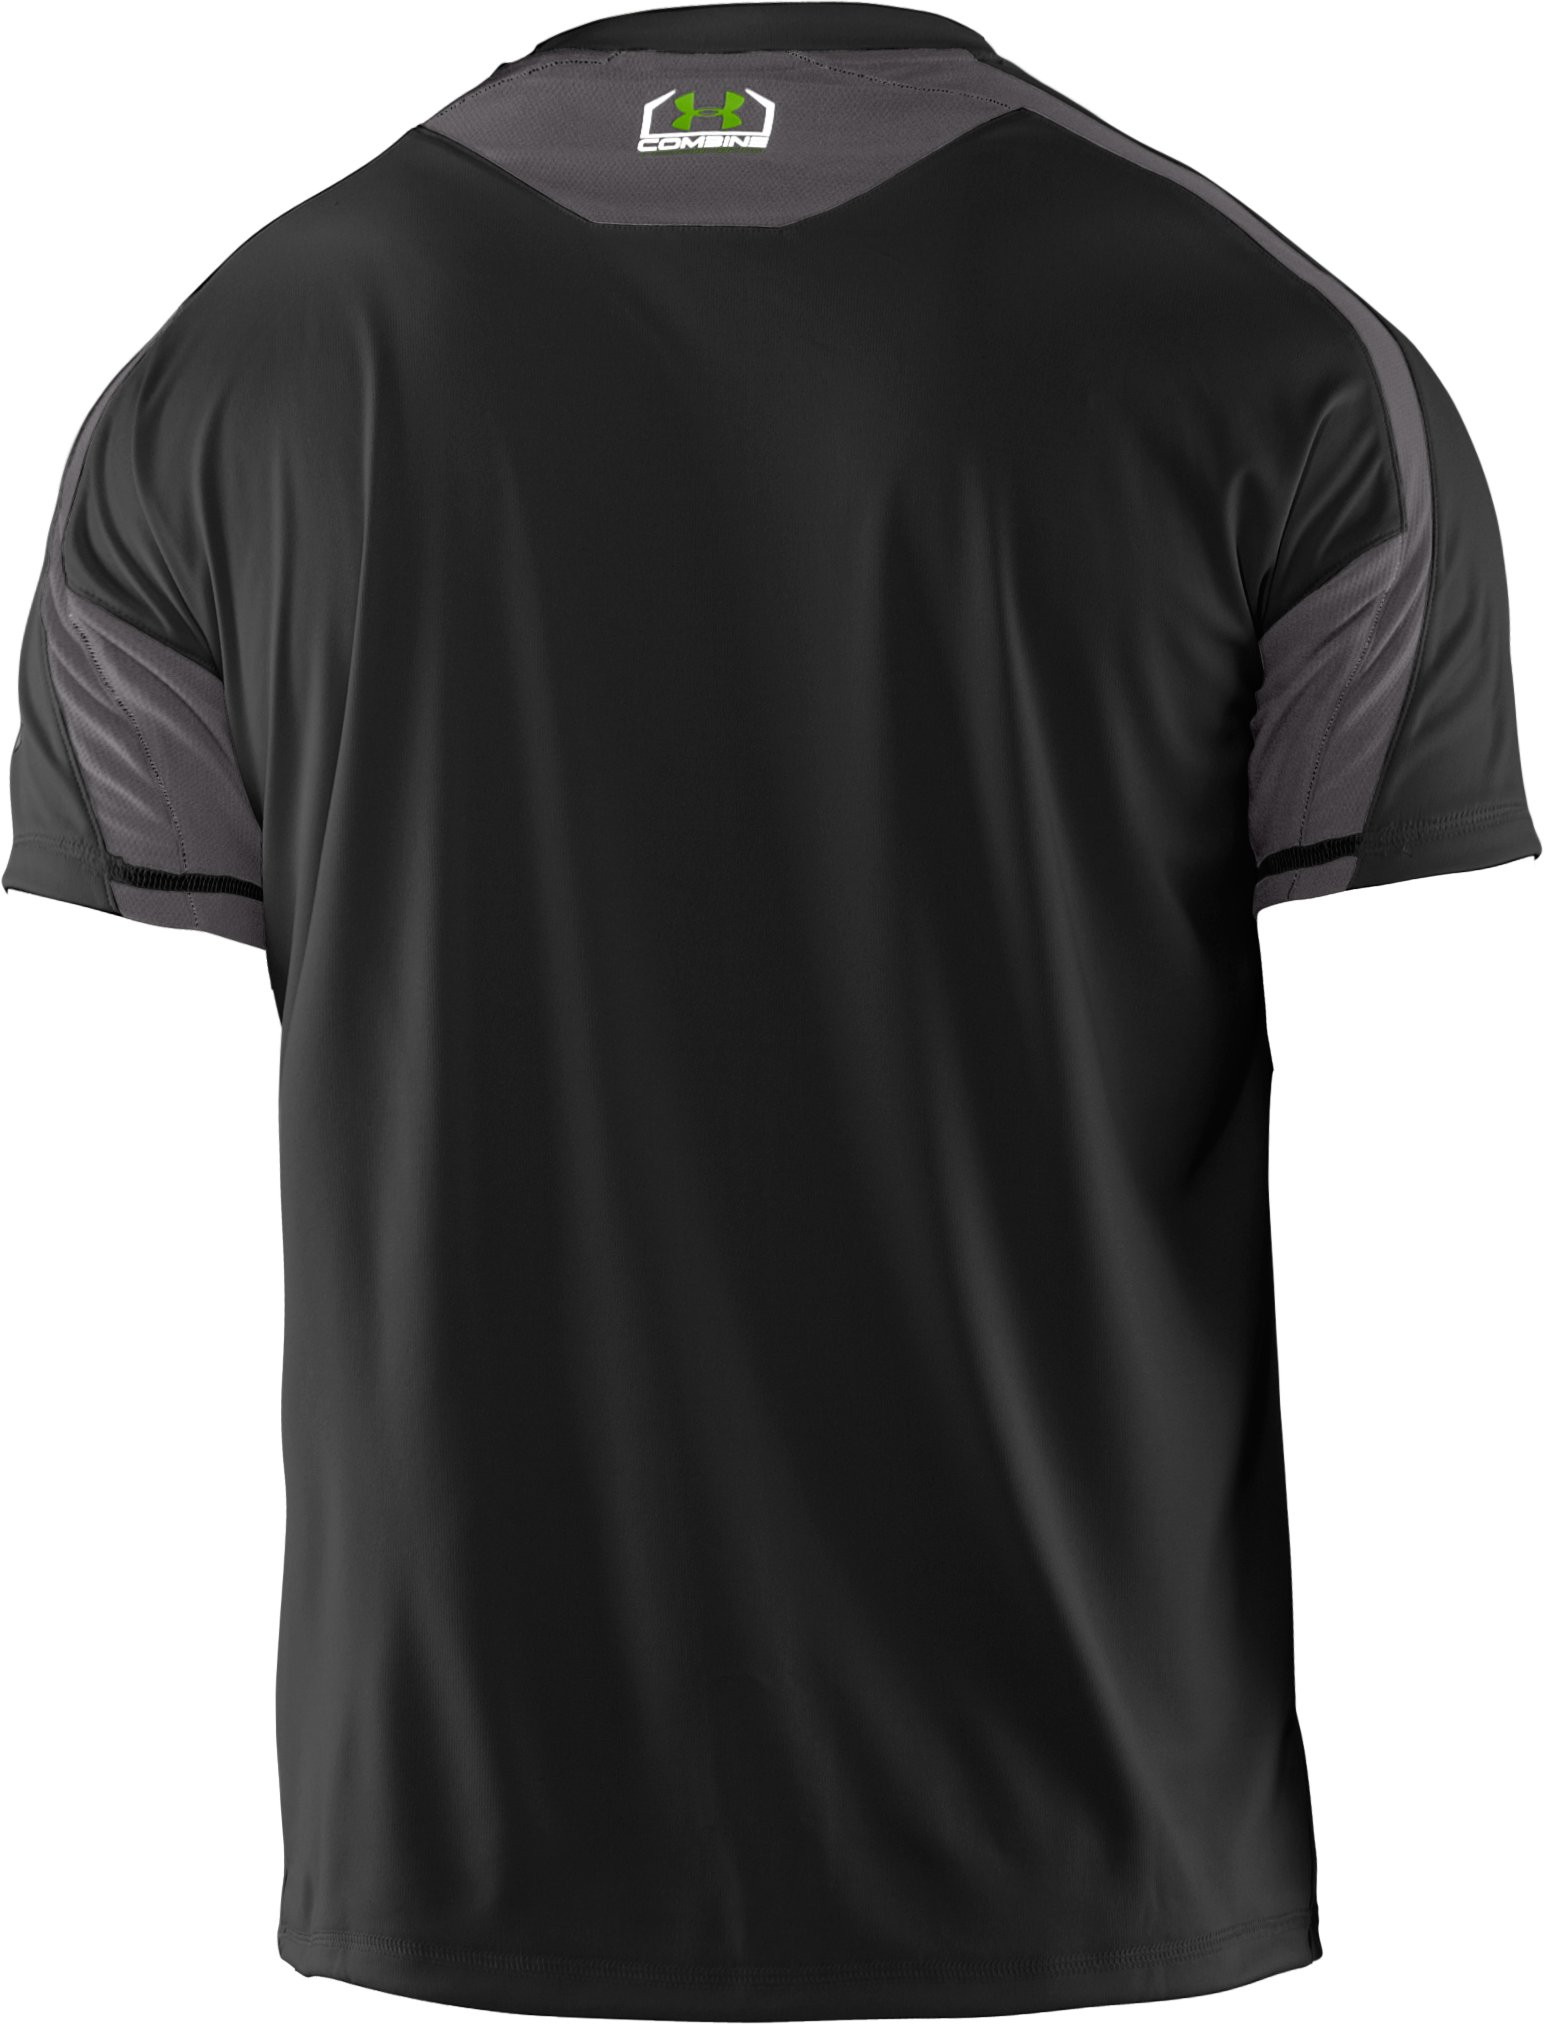 Men's UA Combine® Training Short Sleeve T-Shirt, Black ,